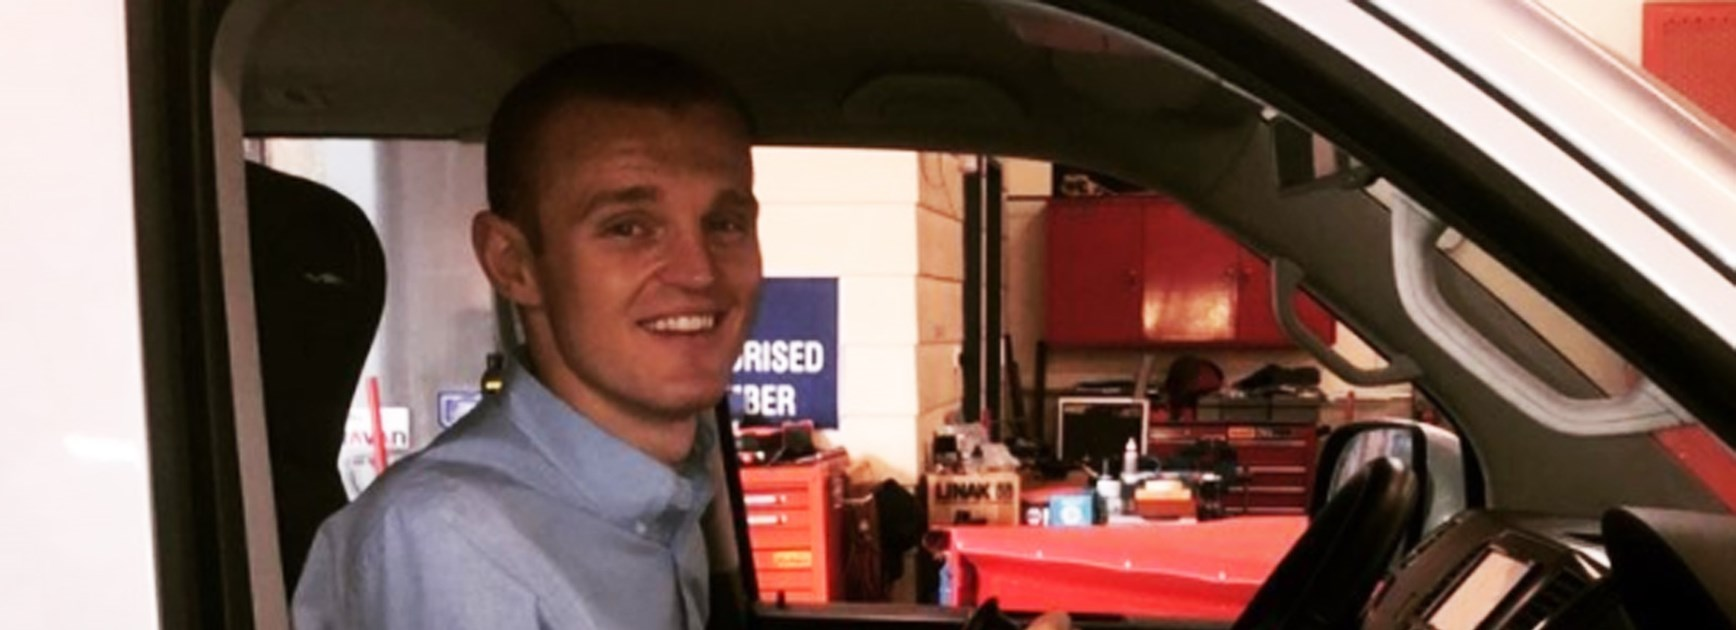 Alex McKinnon has announced he's set to get back behind the wheel.